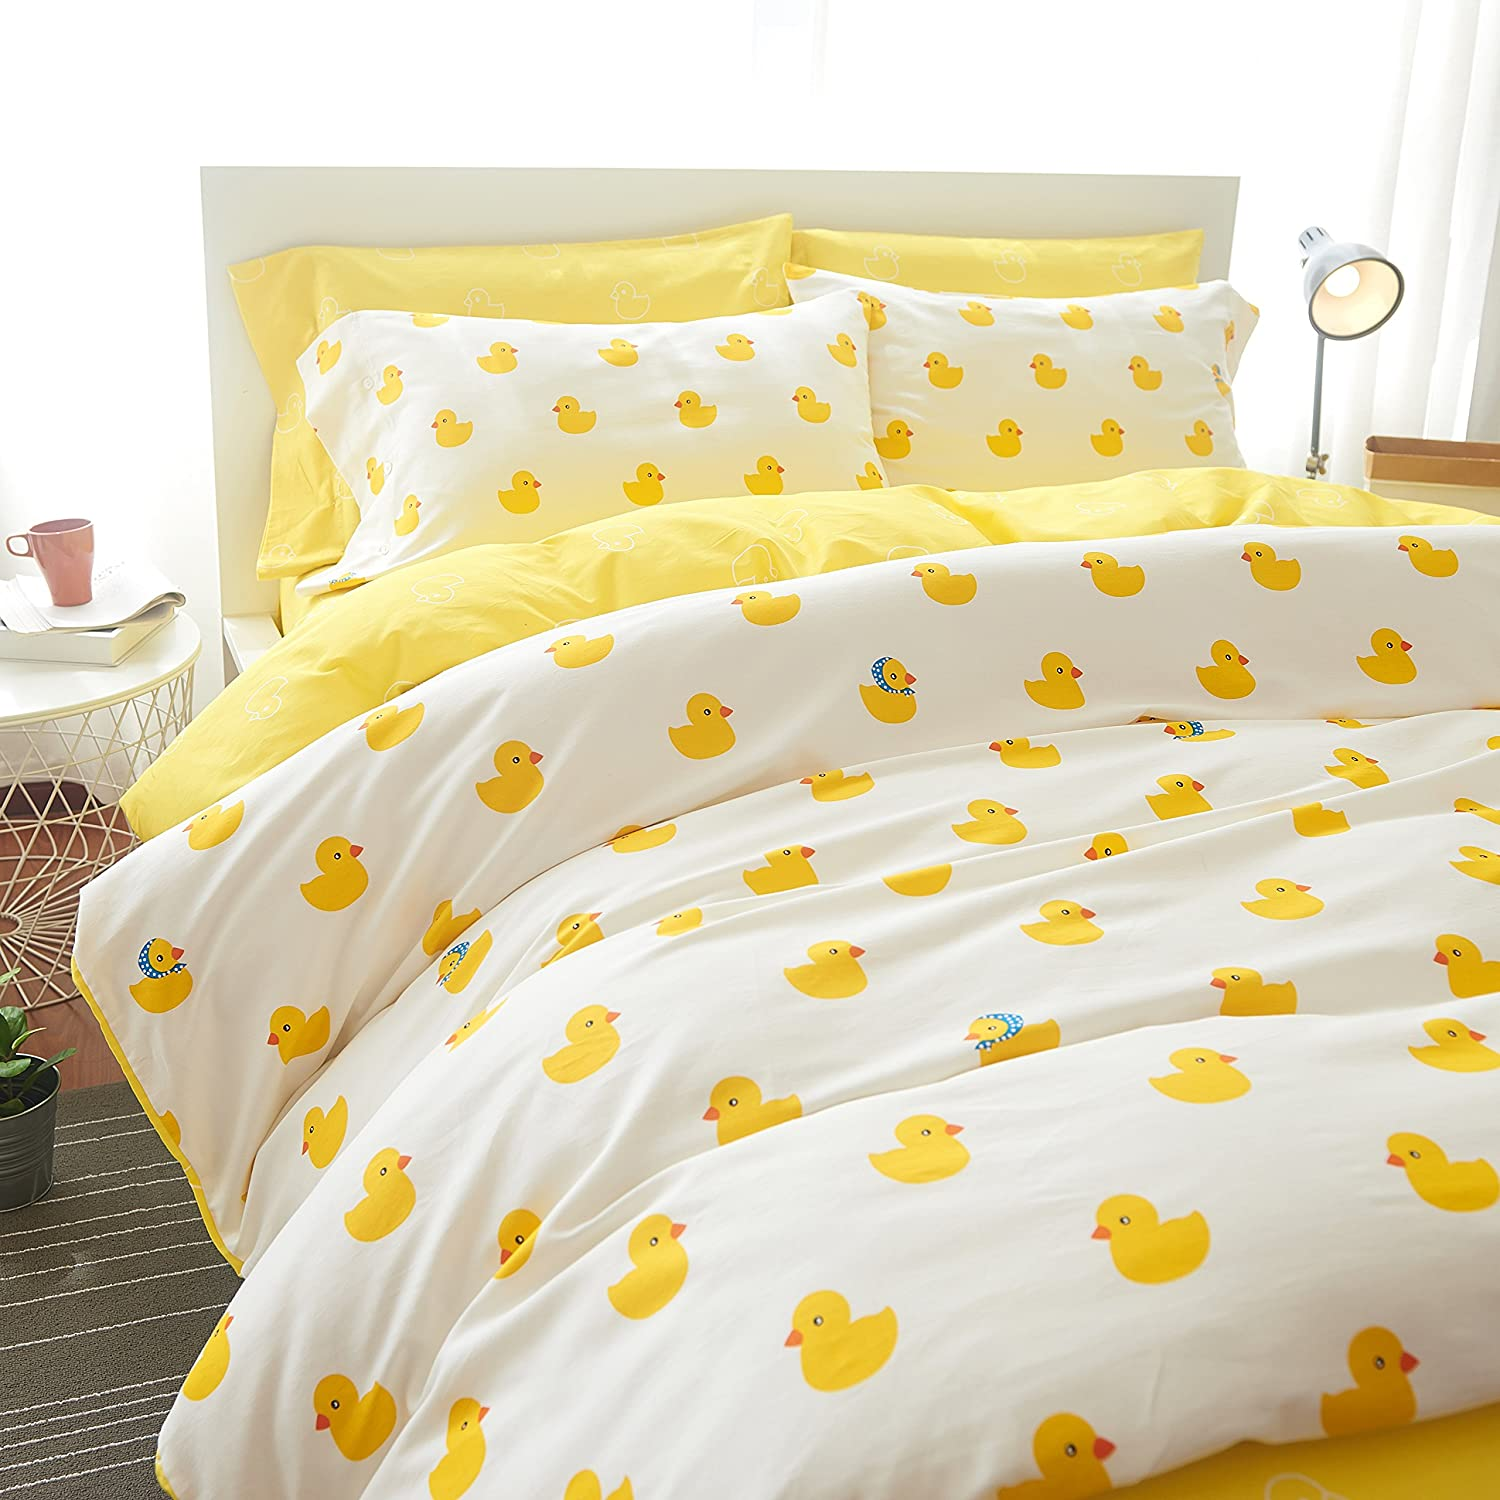 Bedream Luxury Soft 100% Long-Staple Cotton Duvet Cover Set, Reversible Lovely Cartoon Pattern Bedding Sets with Buttons (Full Size/4PCS, Little Duck/Yellow)